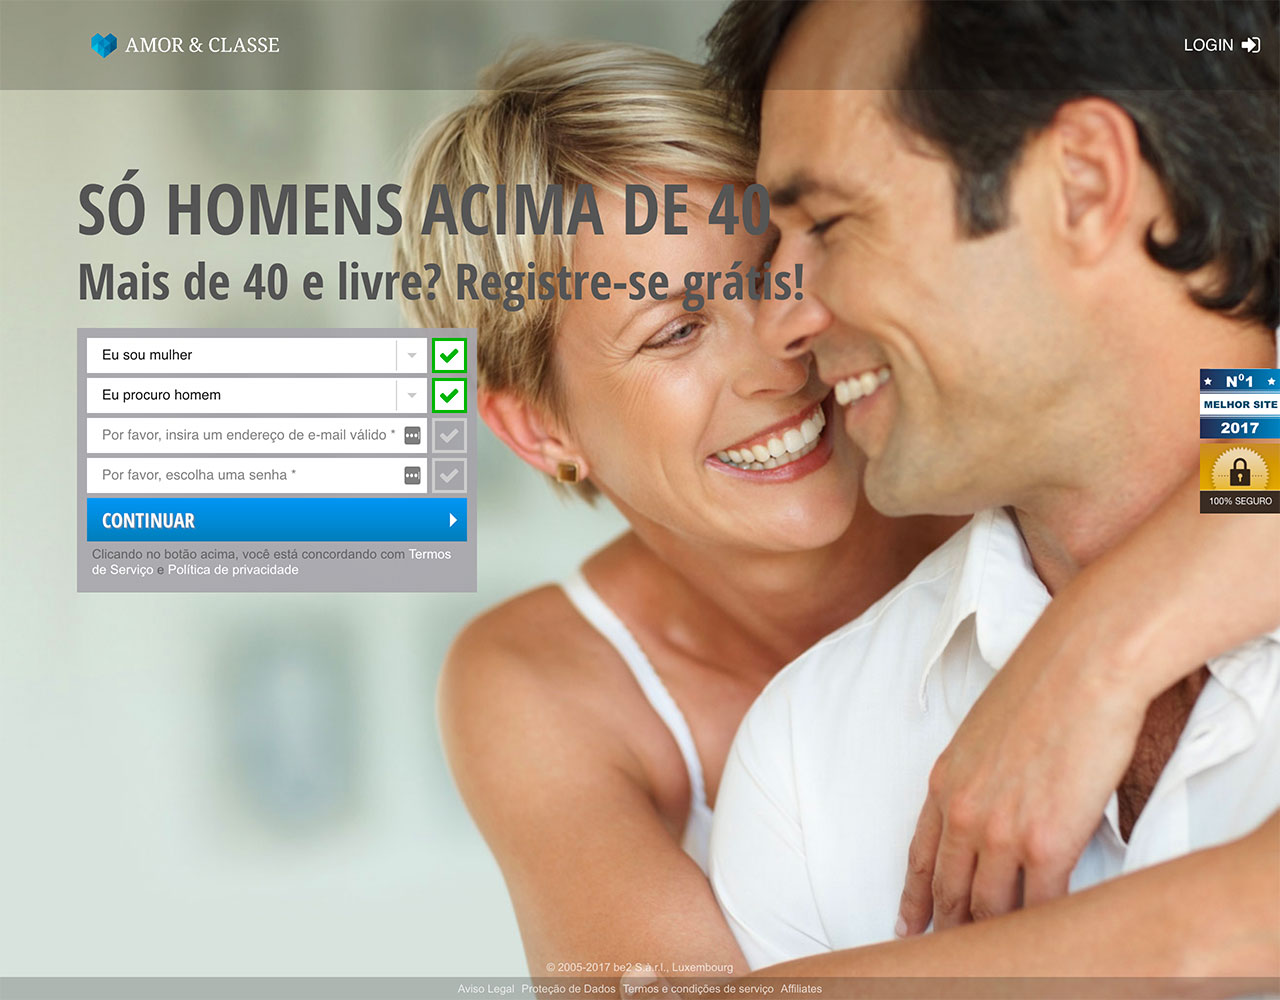 Dating sites: Amor & Classe